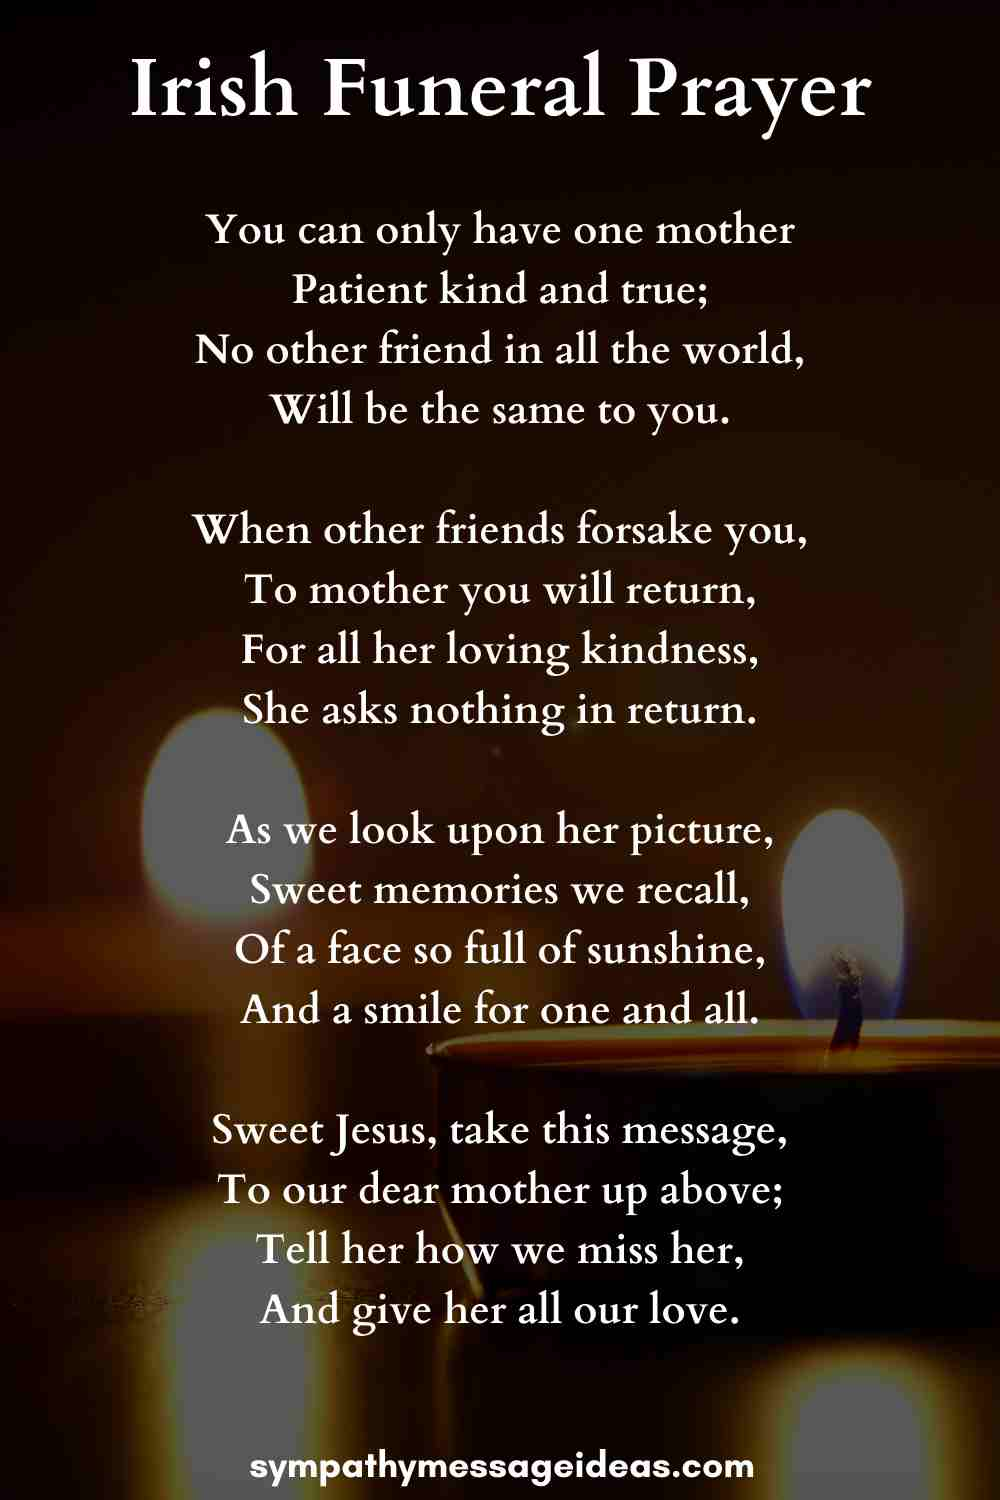 Irish funeral prayer for a mother